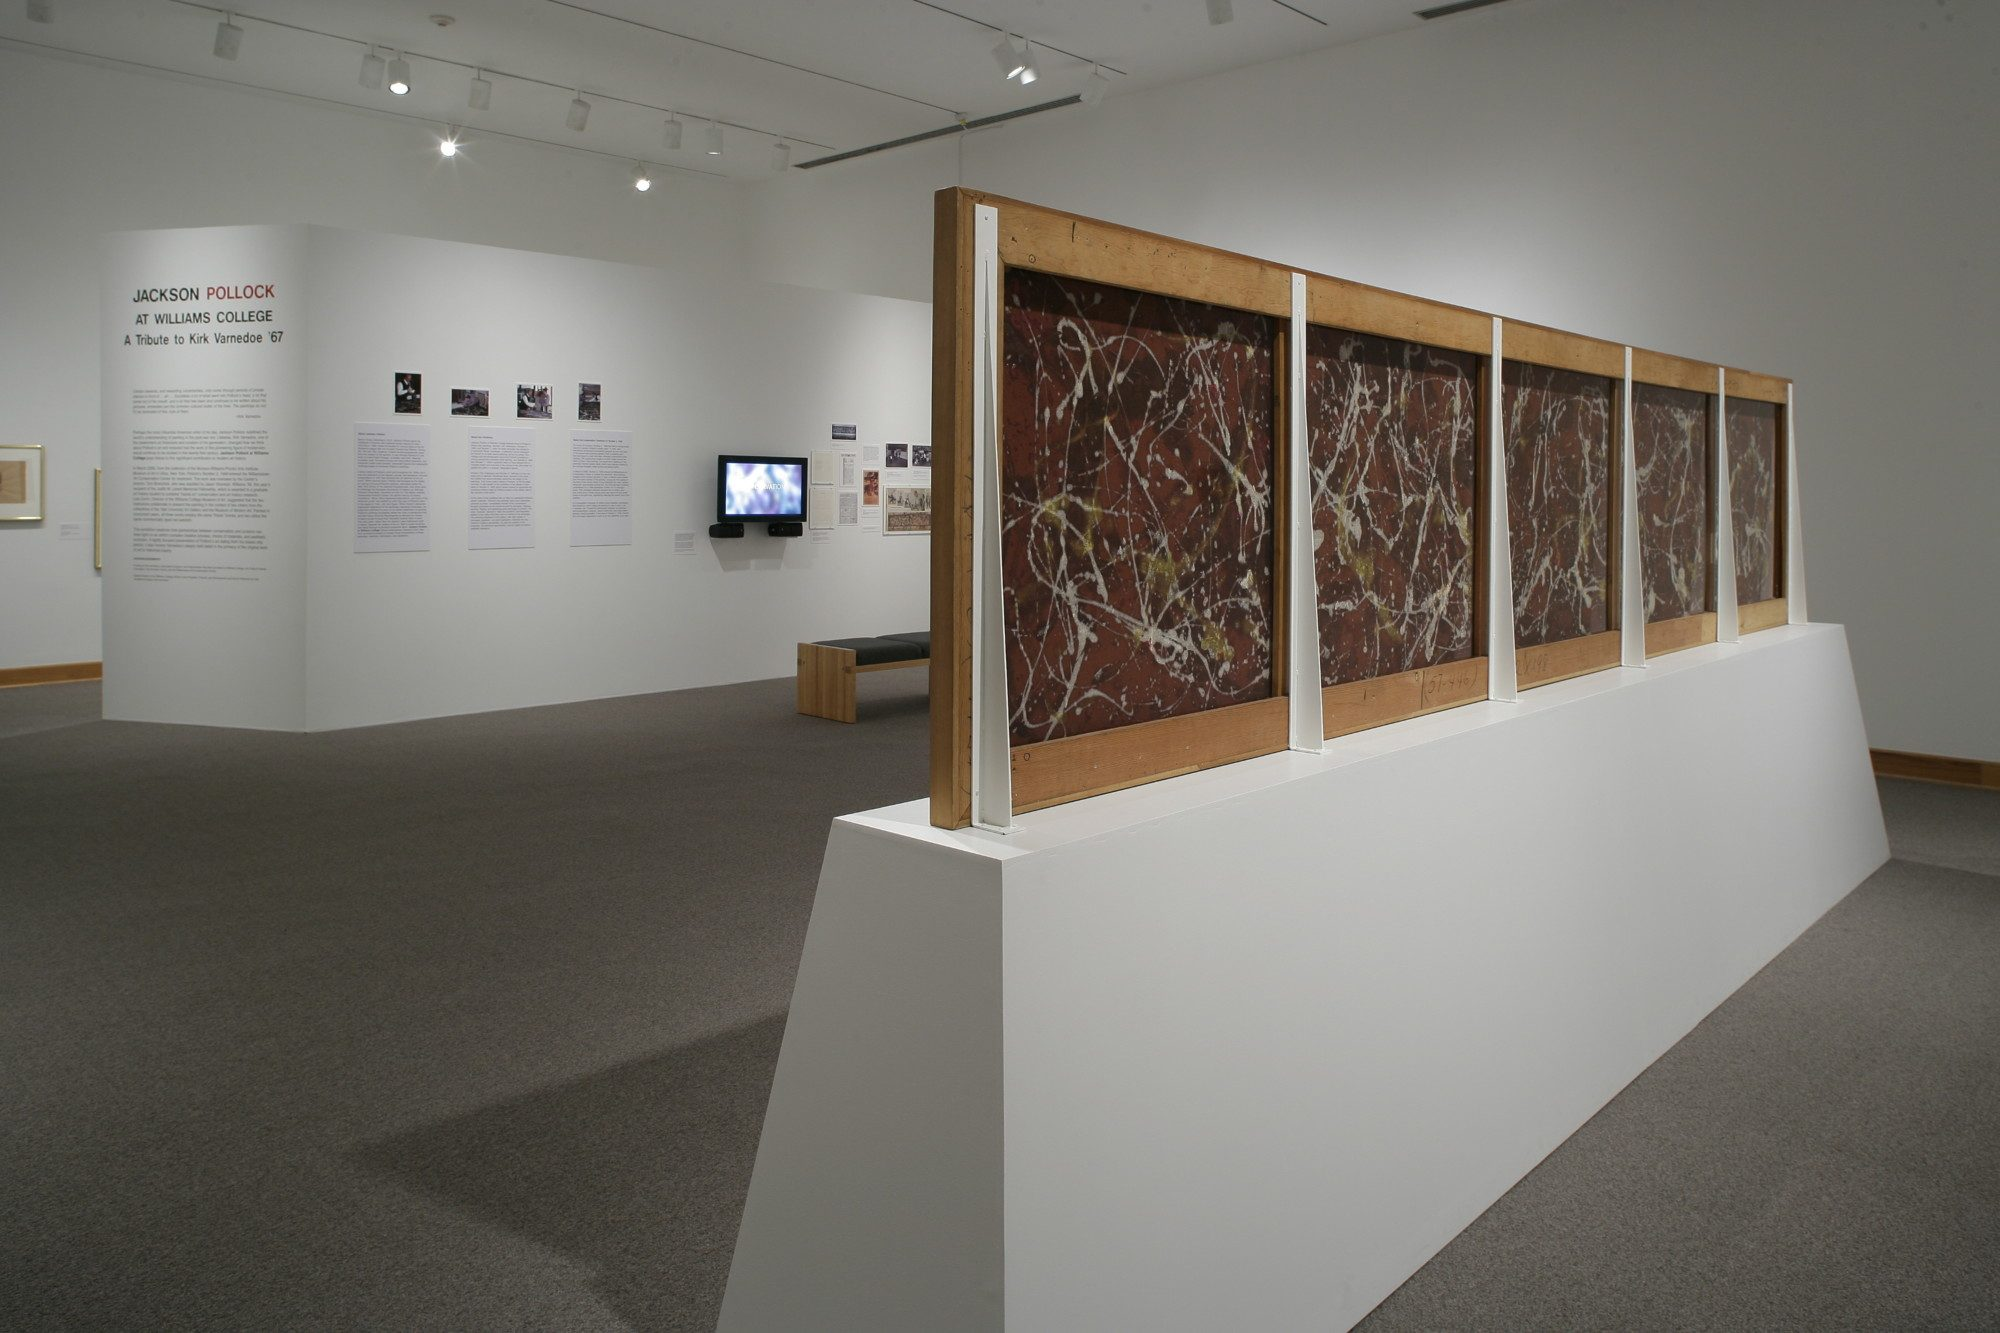 Installation photo by Arthur Evans.